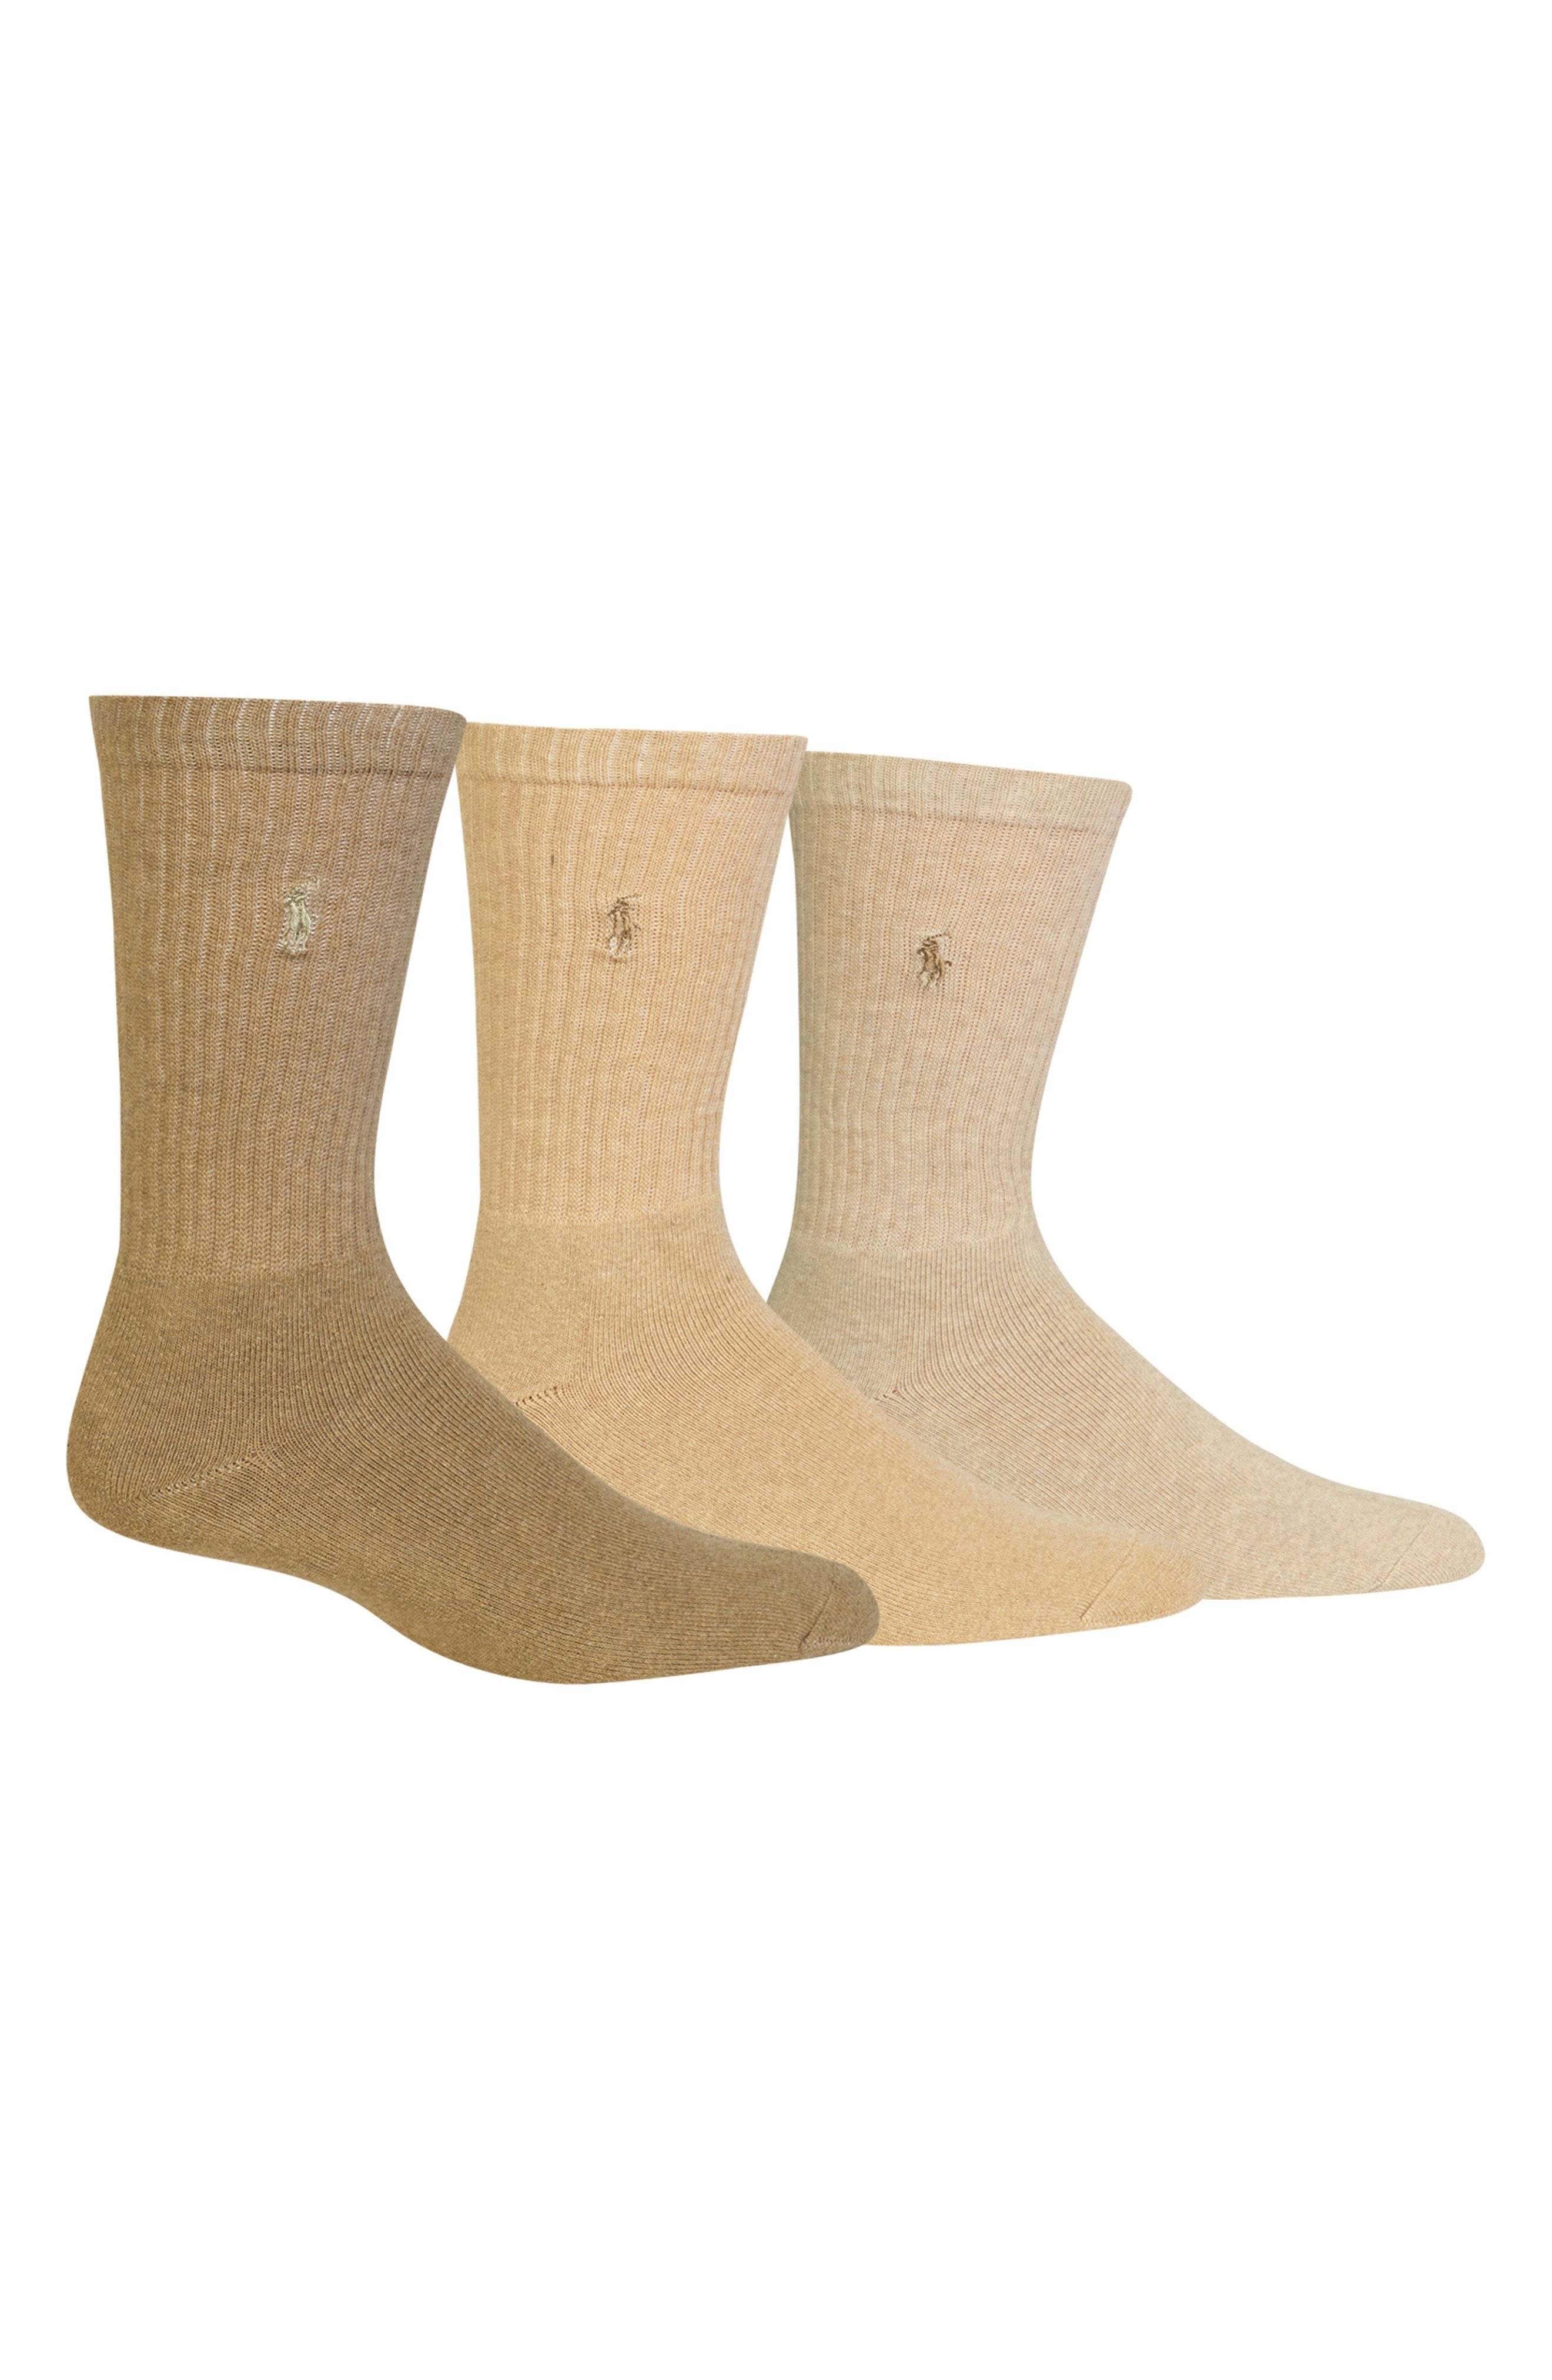 b4a7213a7ccd POLO RALPH LAUREN 3-PACK CREW SOCKS. #poloralphlauren #cloth | Polo ...